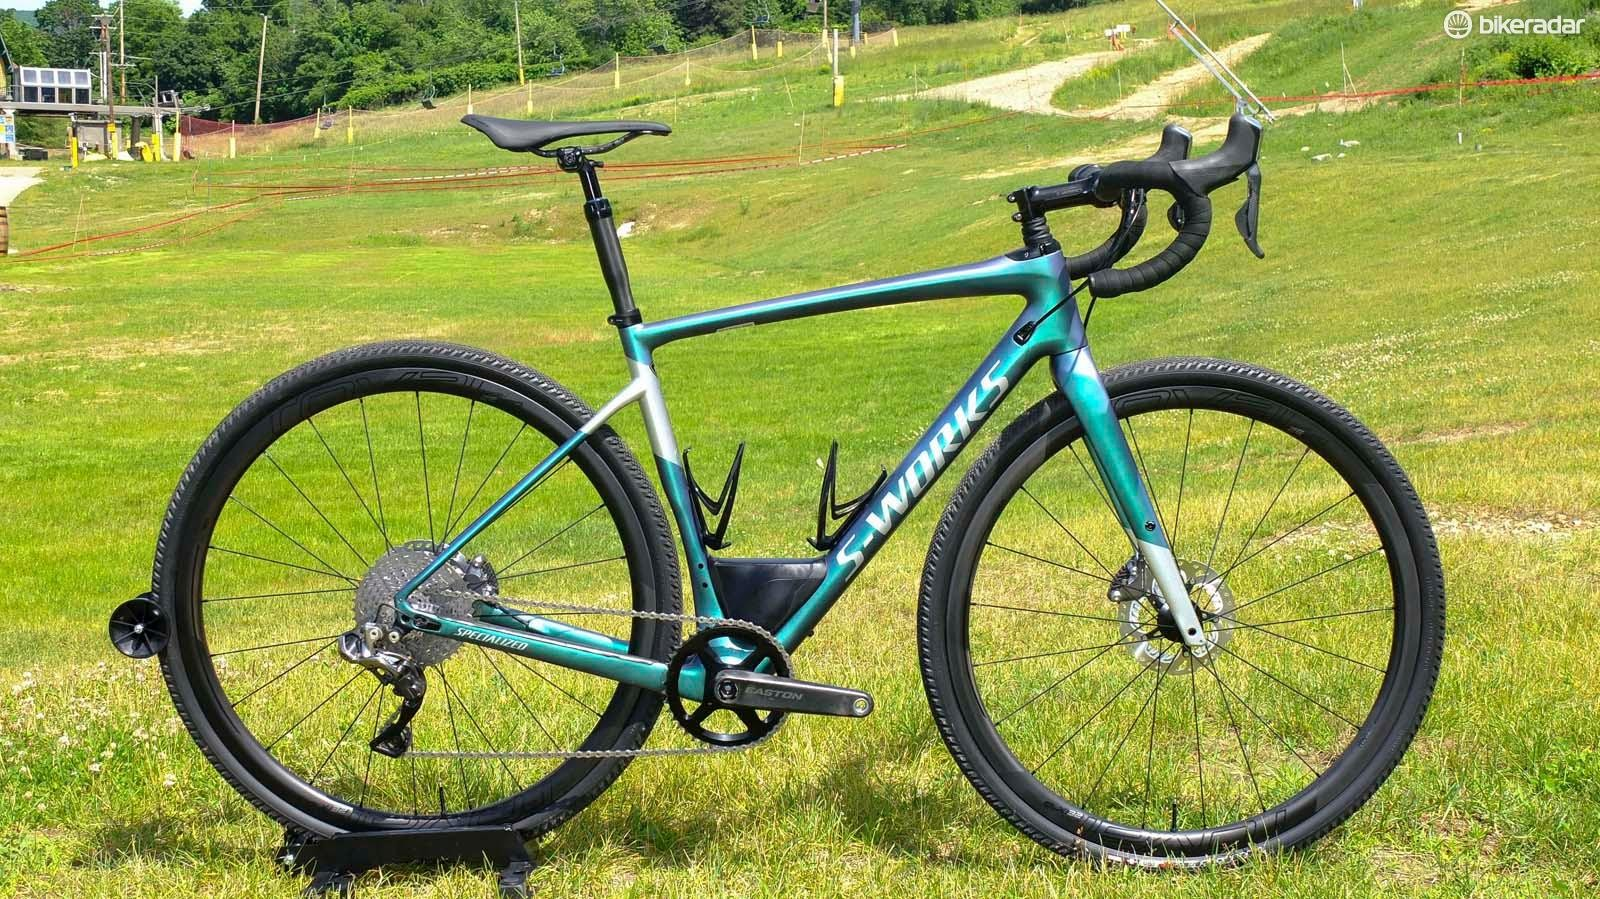 The new Specialized S-Works Diverge in standard spec, with 700c carbon rims and 38mm tyres